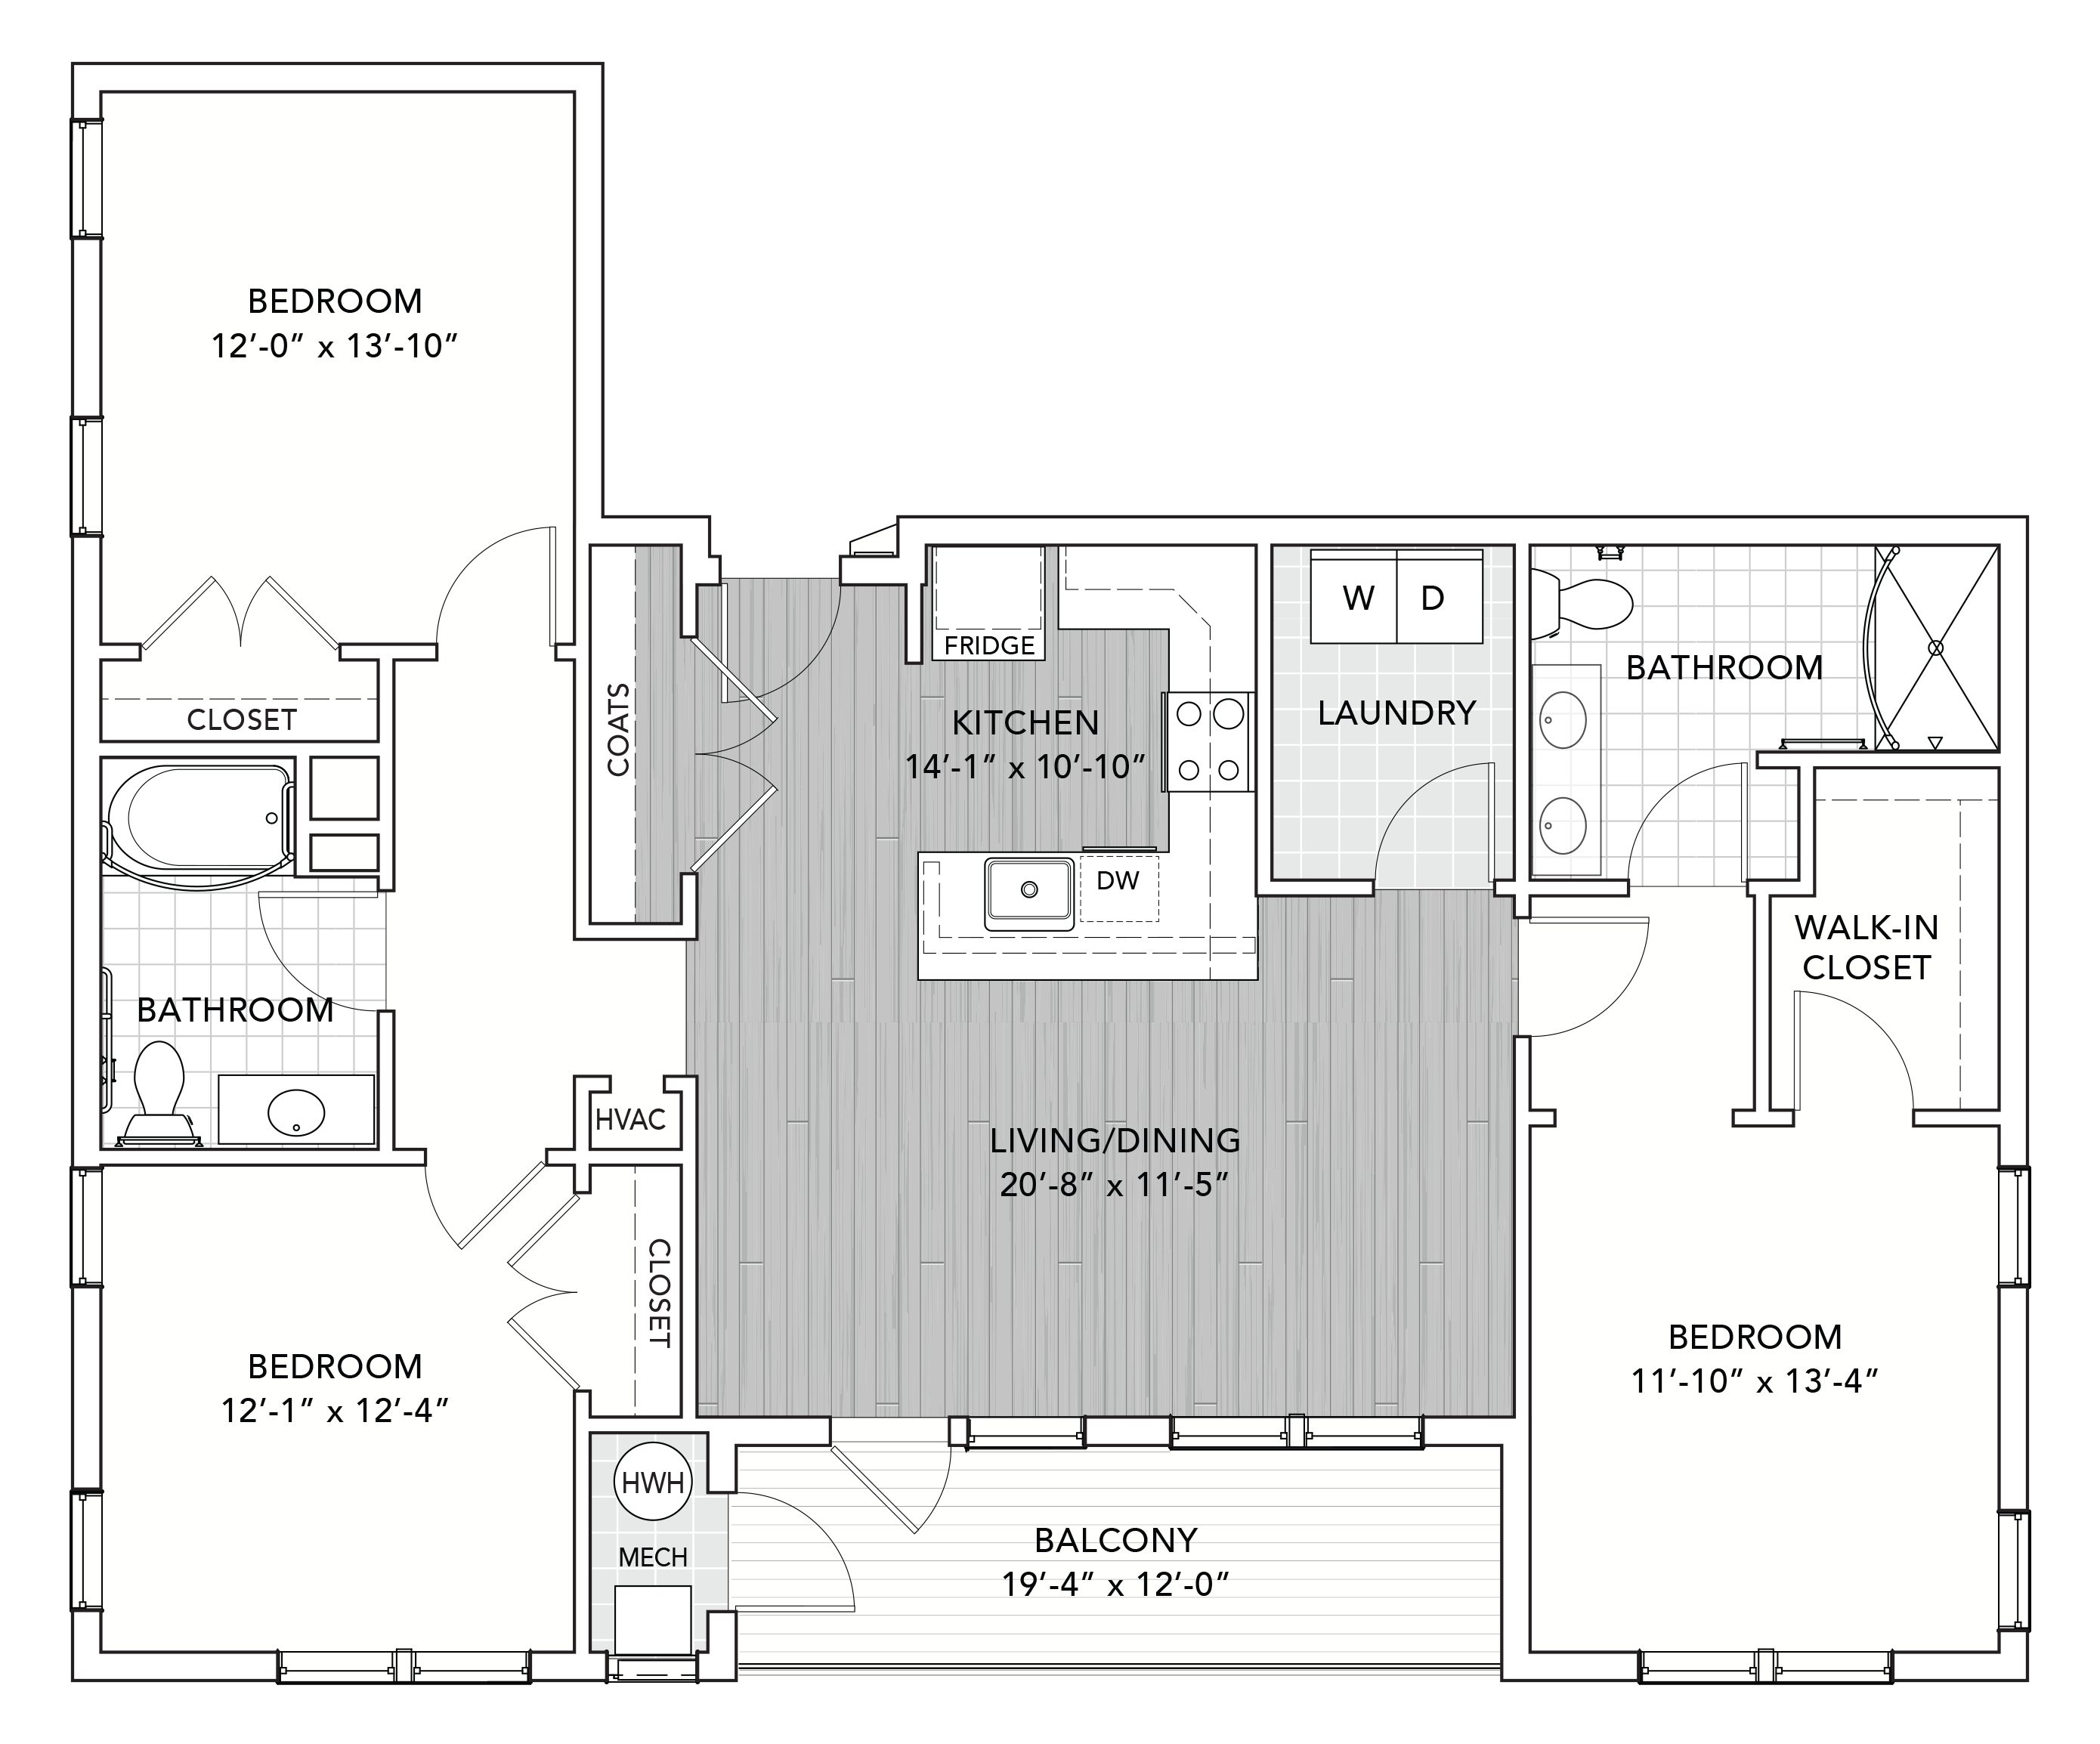 P0655013 parksquare g1 1470 2 floorplan